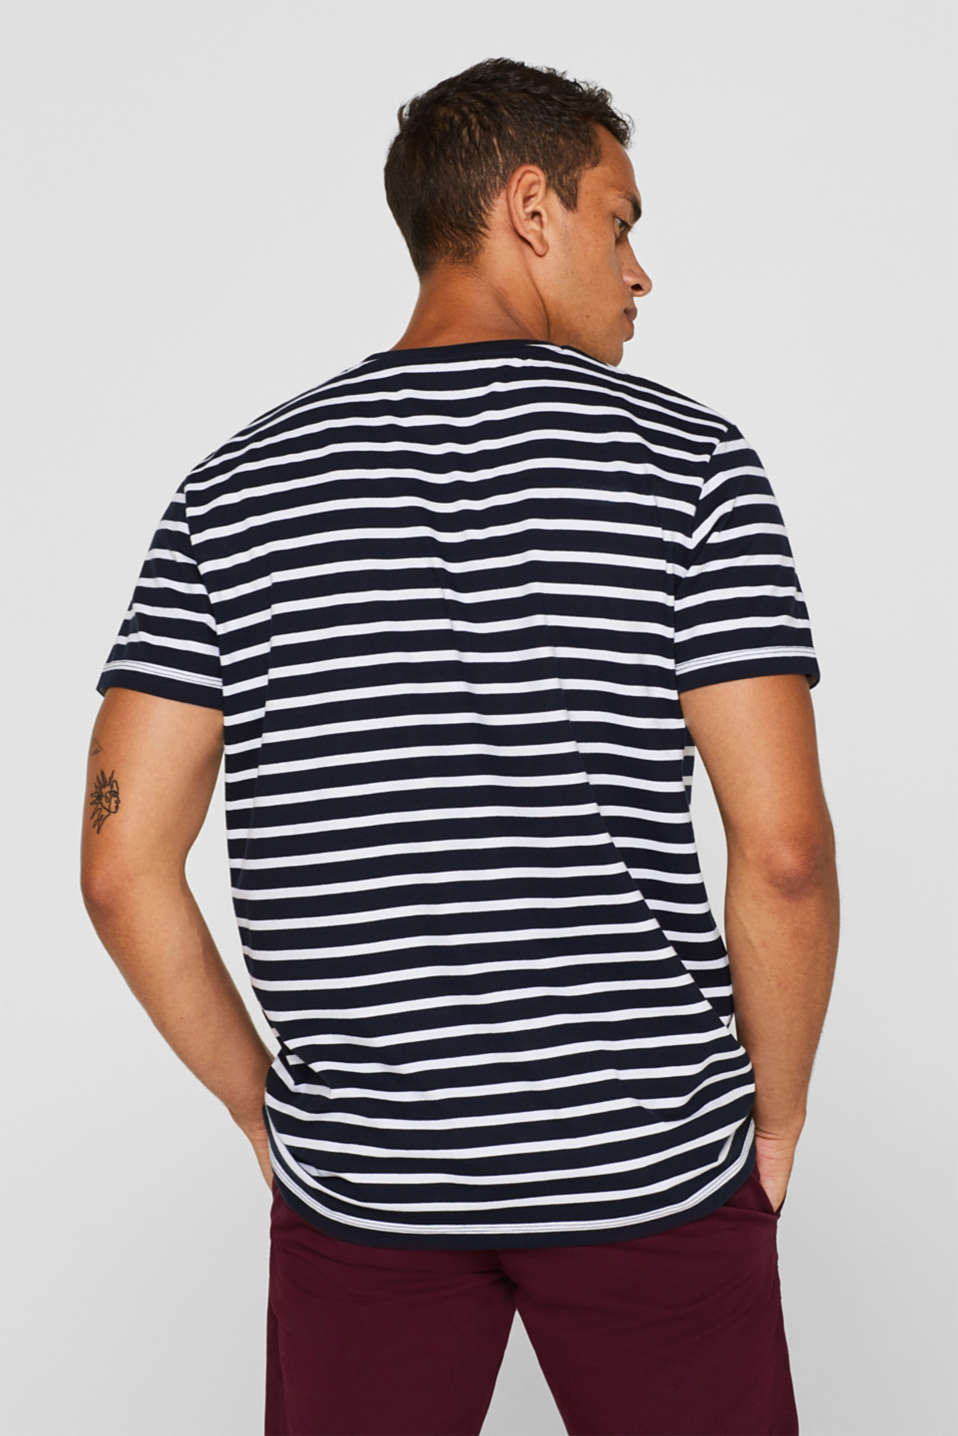 Jersey T-shirt with stripes, 100% cotton, NAVY 2, detail image number 3